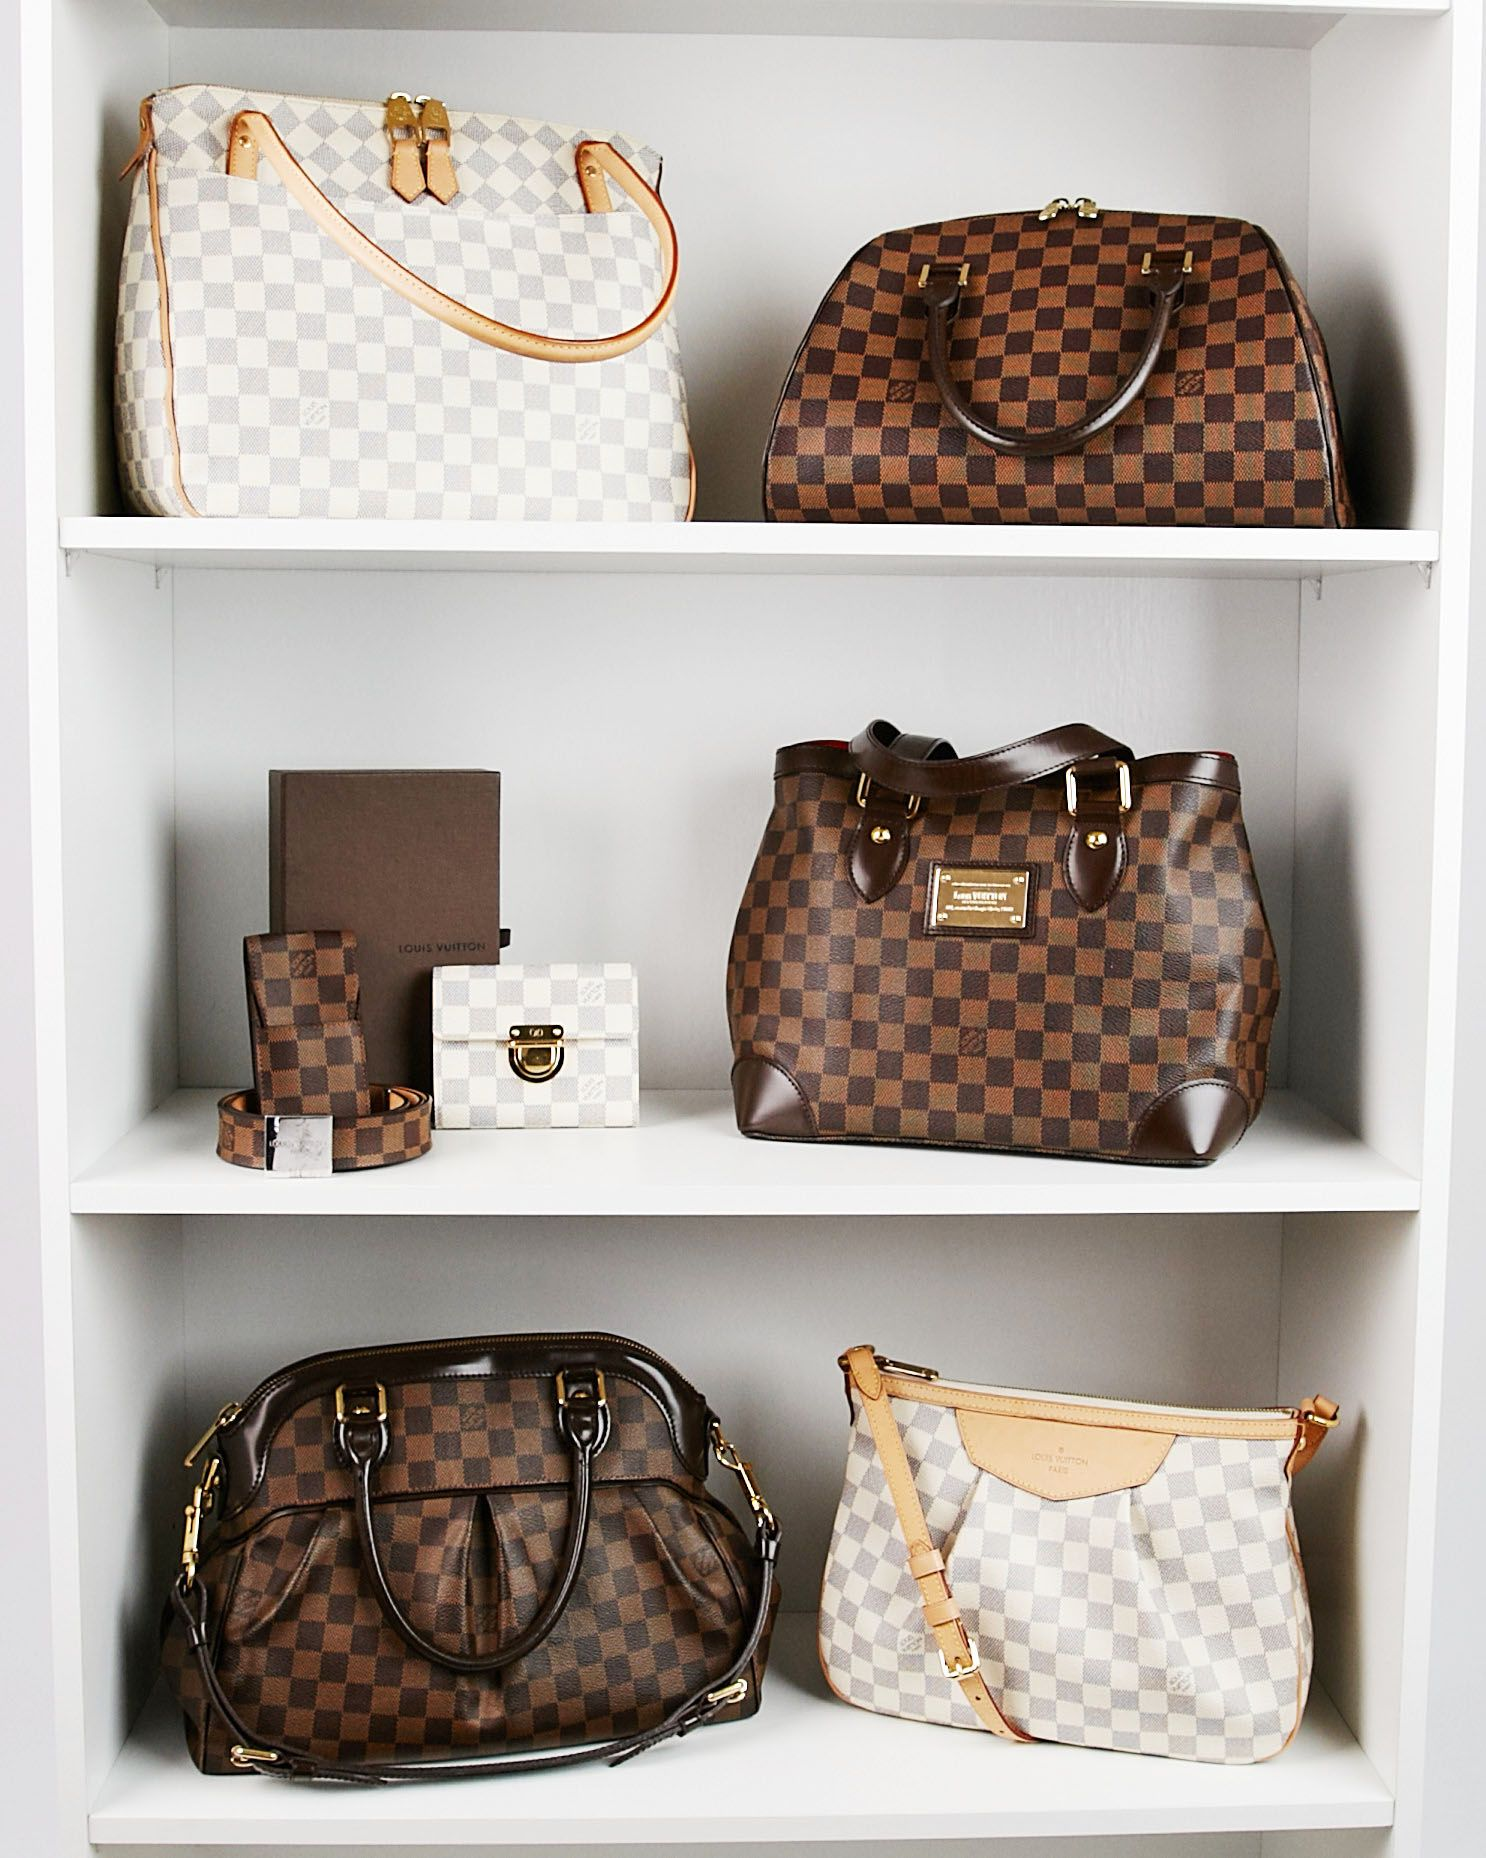 af3c97e85d50 Got that Spring Cleaning bug  Sell us your pre-loved luxury goods! -  Yoogi s Closet